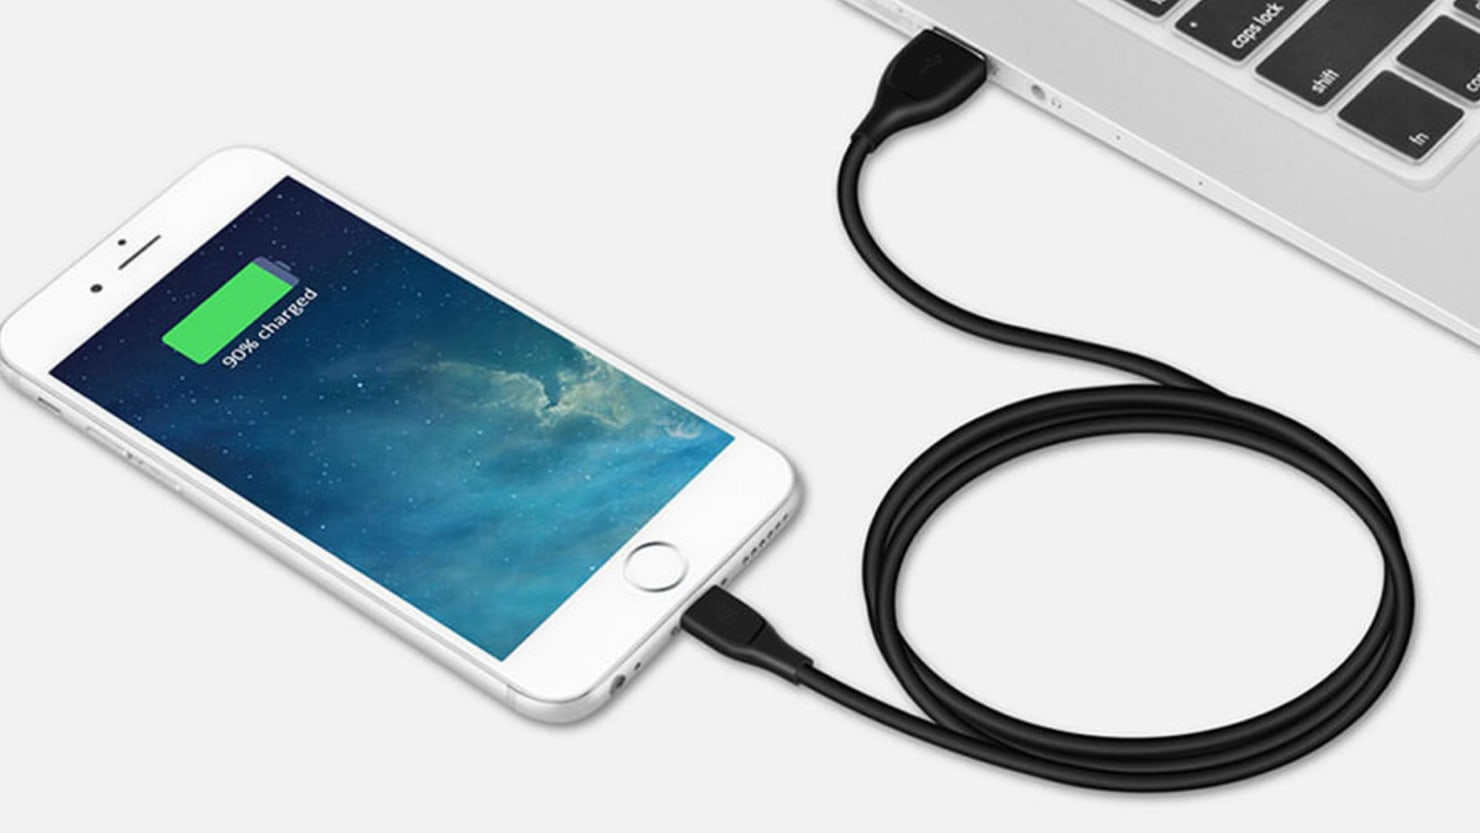 This Robust Charging Cable Can Stand Up to Any Rough Treatment Without Breaking Down